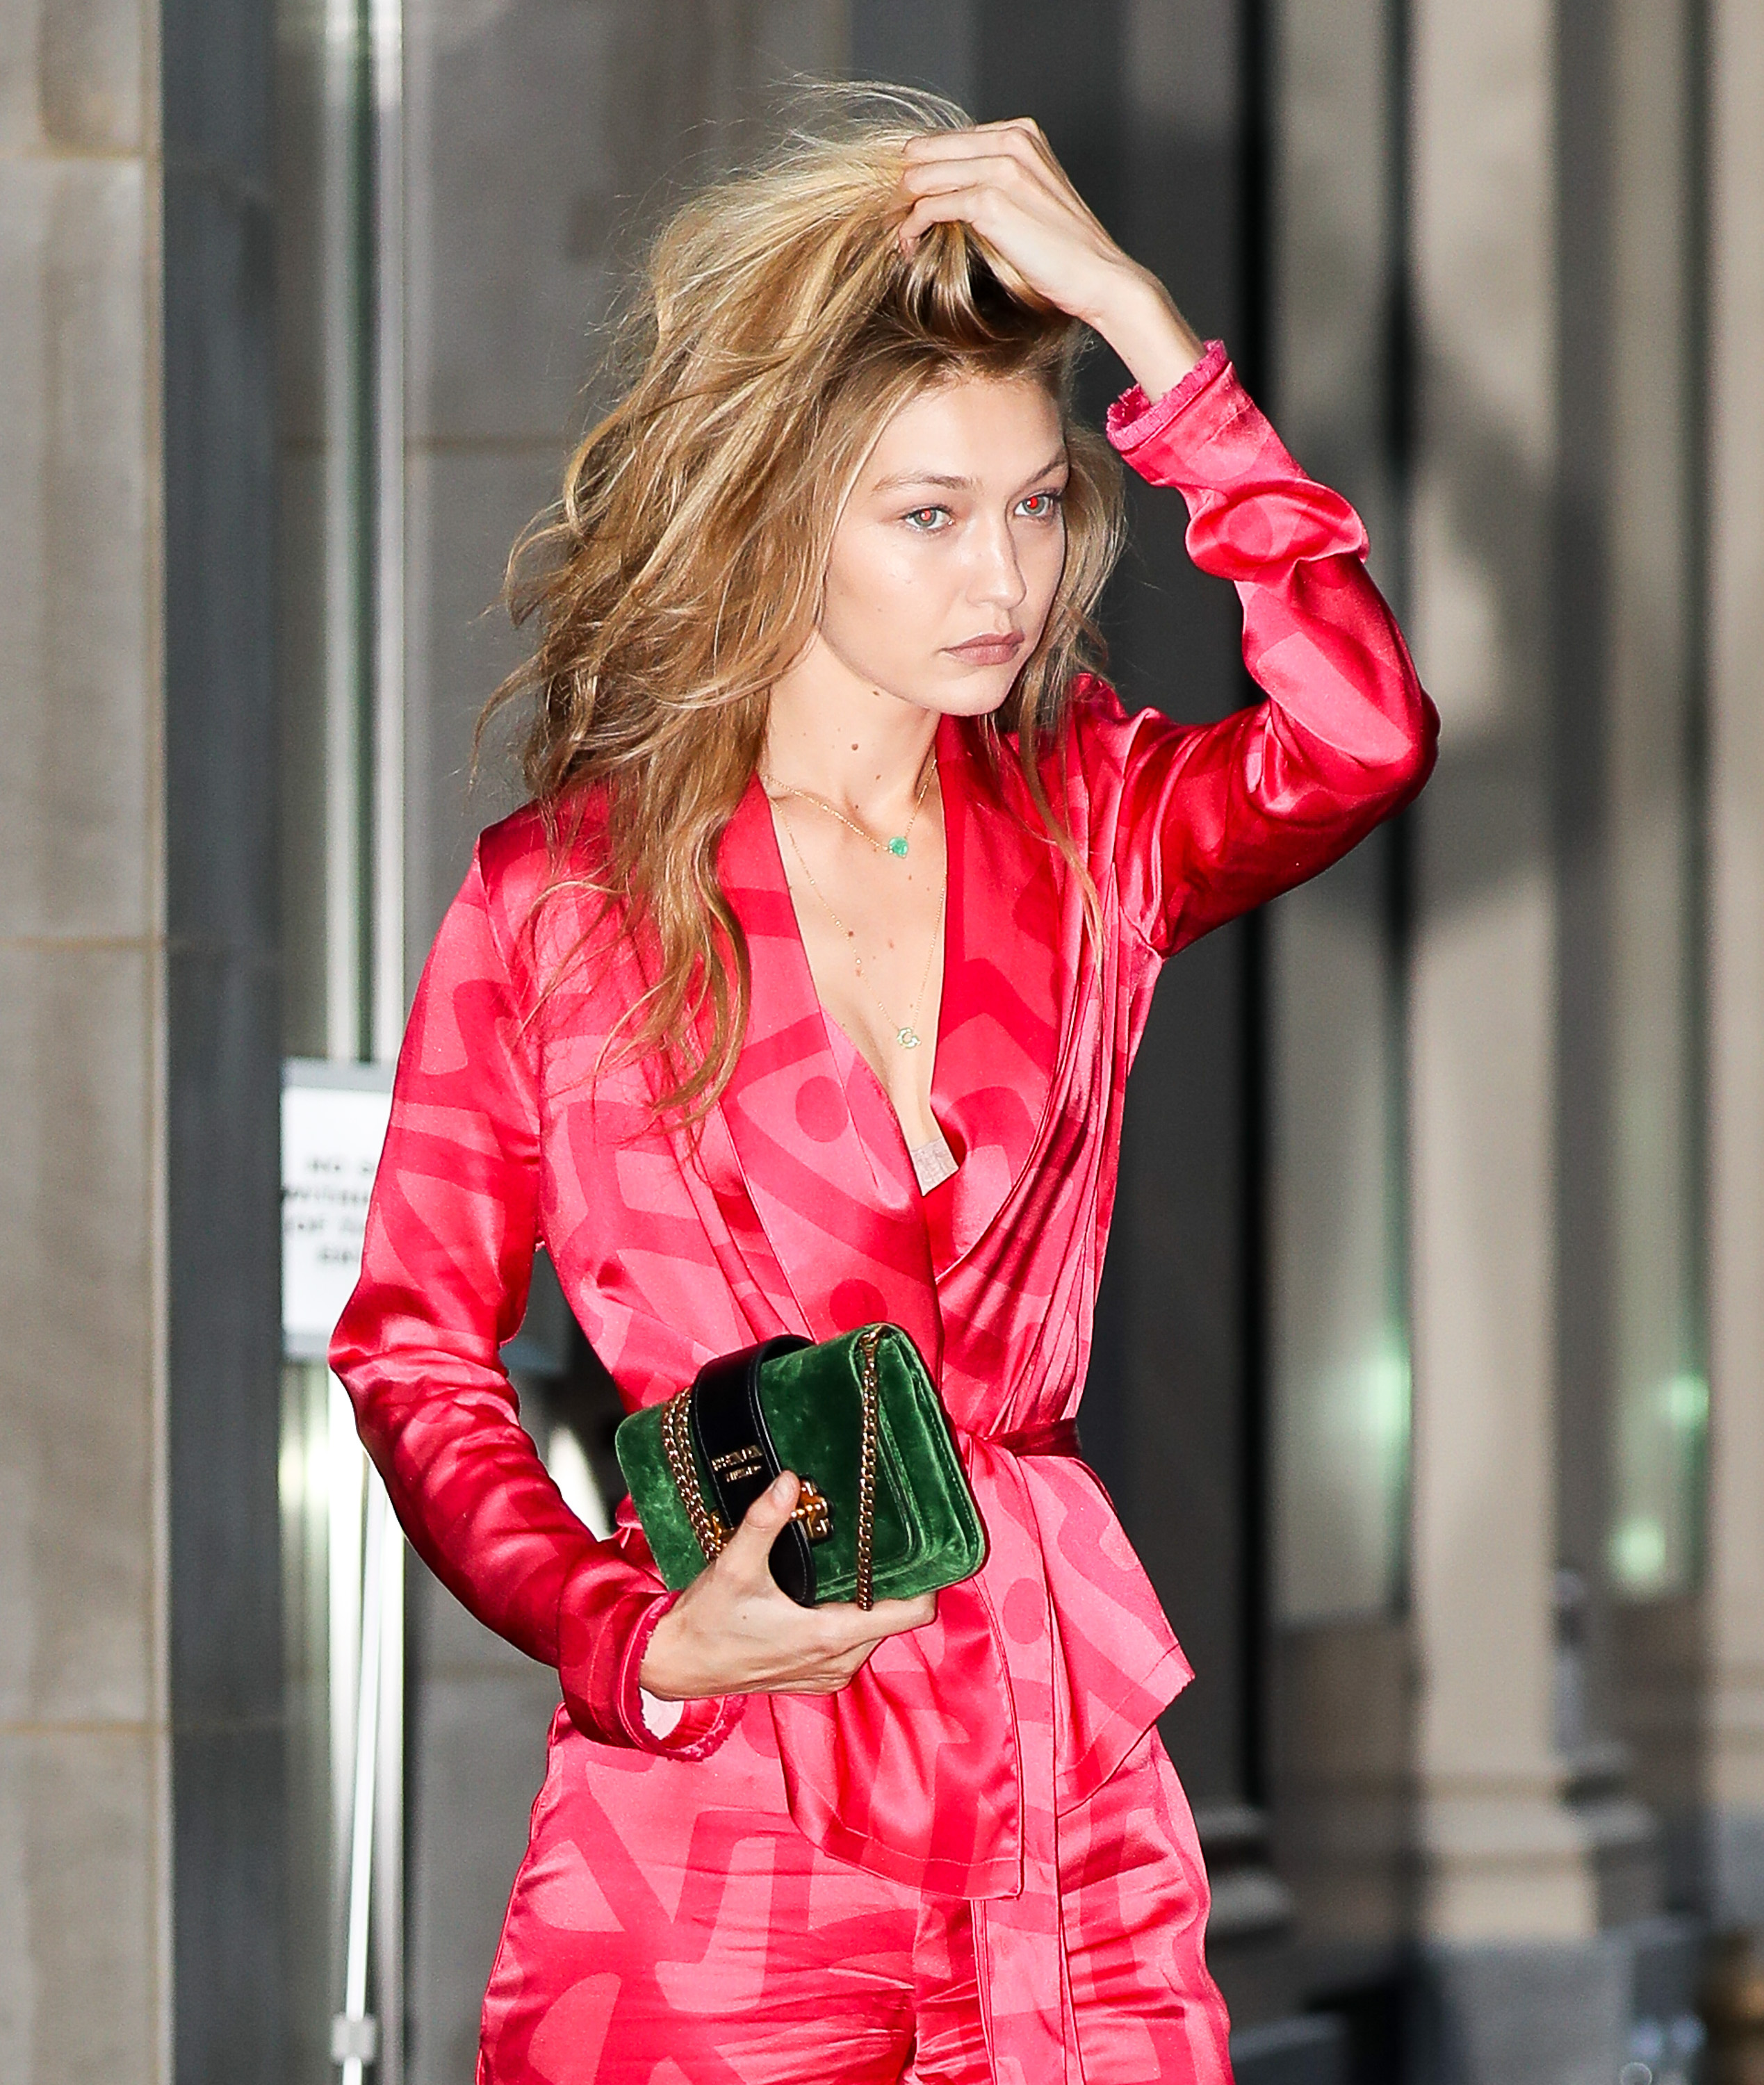 Gigi Hadid is all smiling while wearing a pink jumpsuit as leaving an office building in the Dimond district in Midtown, New York City. <P> Pictured: Gigi Hadid <B>Ref: SPL1571699  070917  </B><BR/> Picture by: Felipe Ramales / Splash News<BR/> </P><P> <B>Splash News and Pictures</B><BR/> Los Angeles:310-821-2666<BR/> New York:212-619-2666<BR/> London:870-934-2666<BR/> <span id=